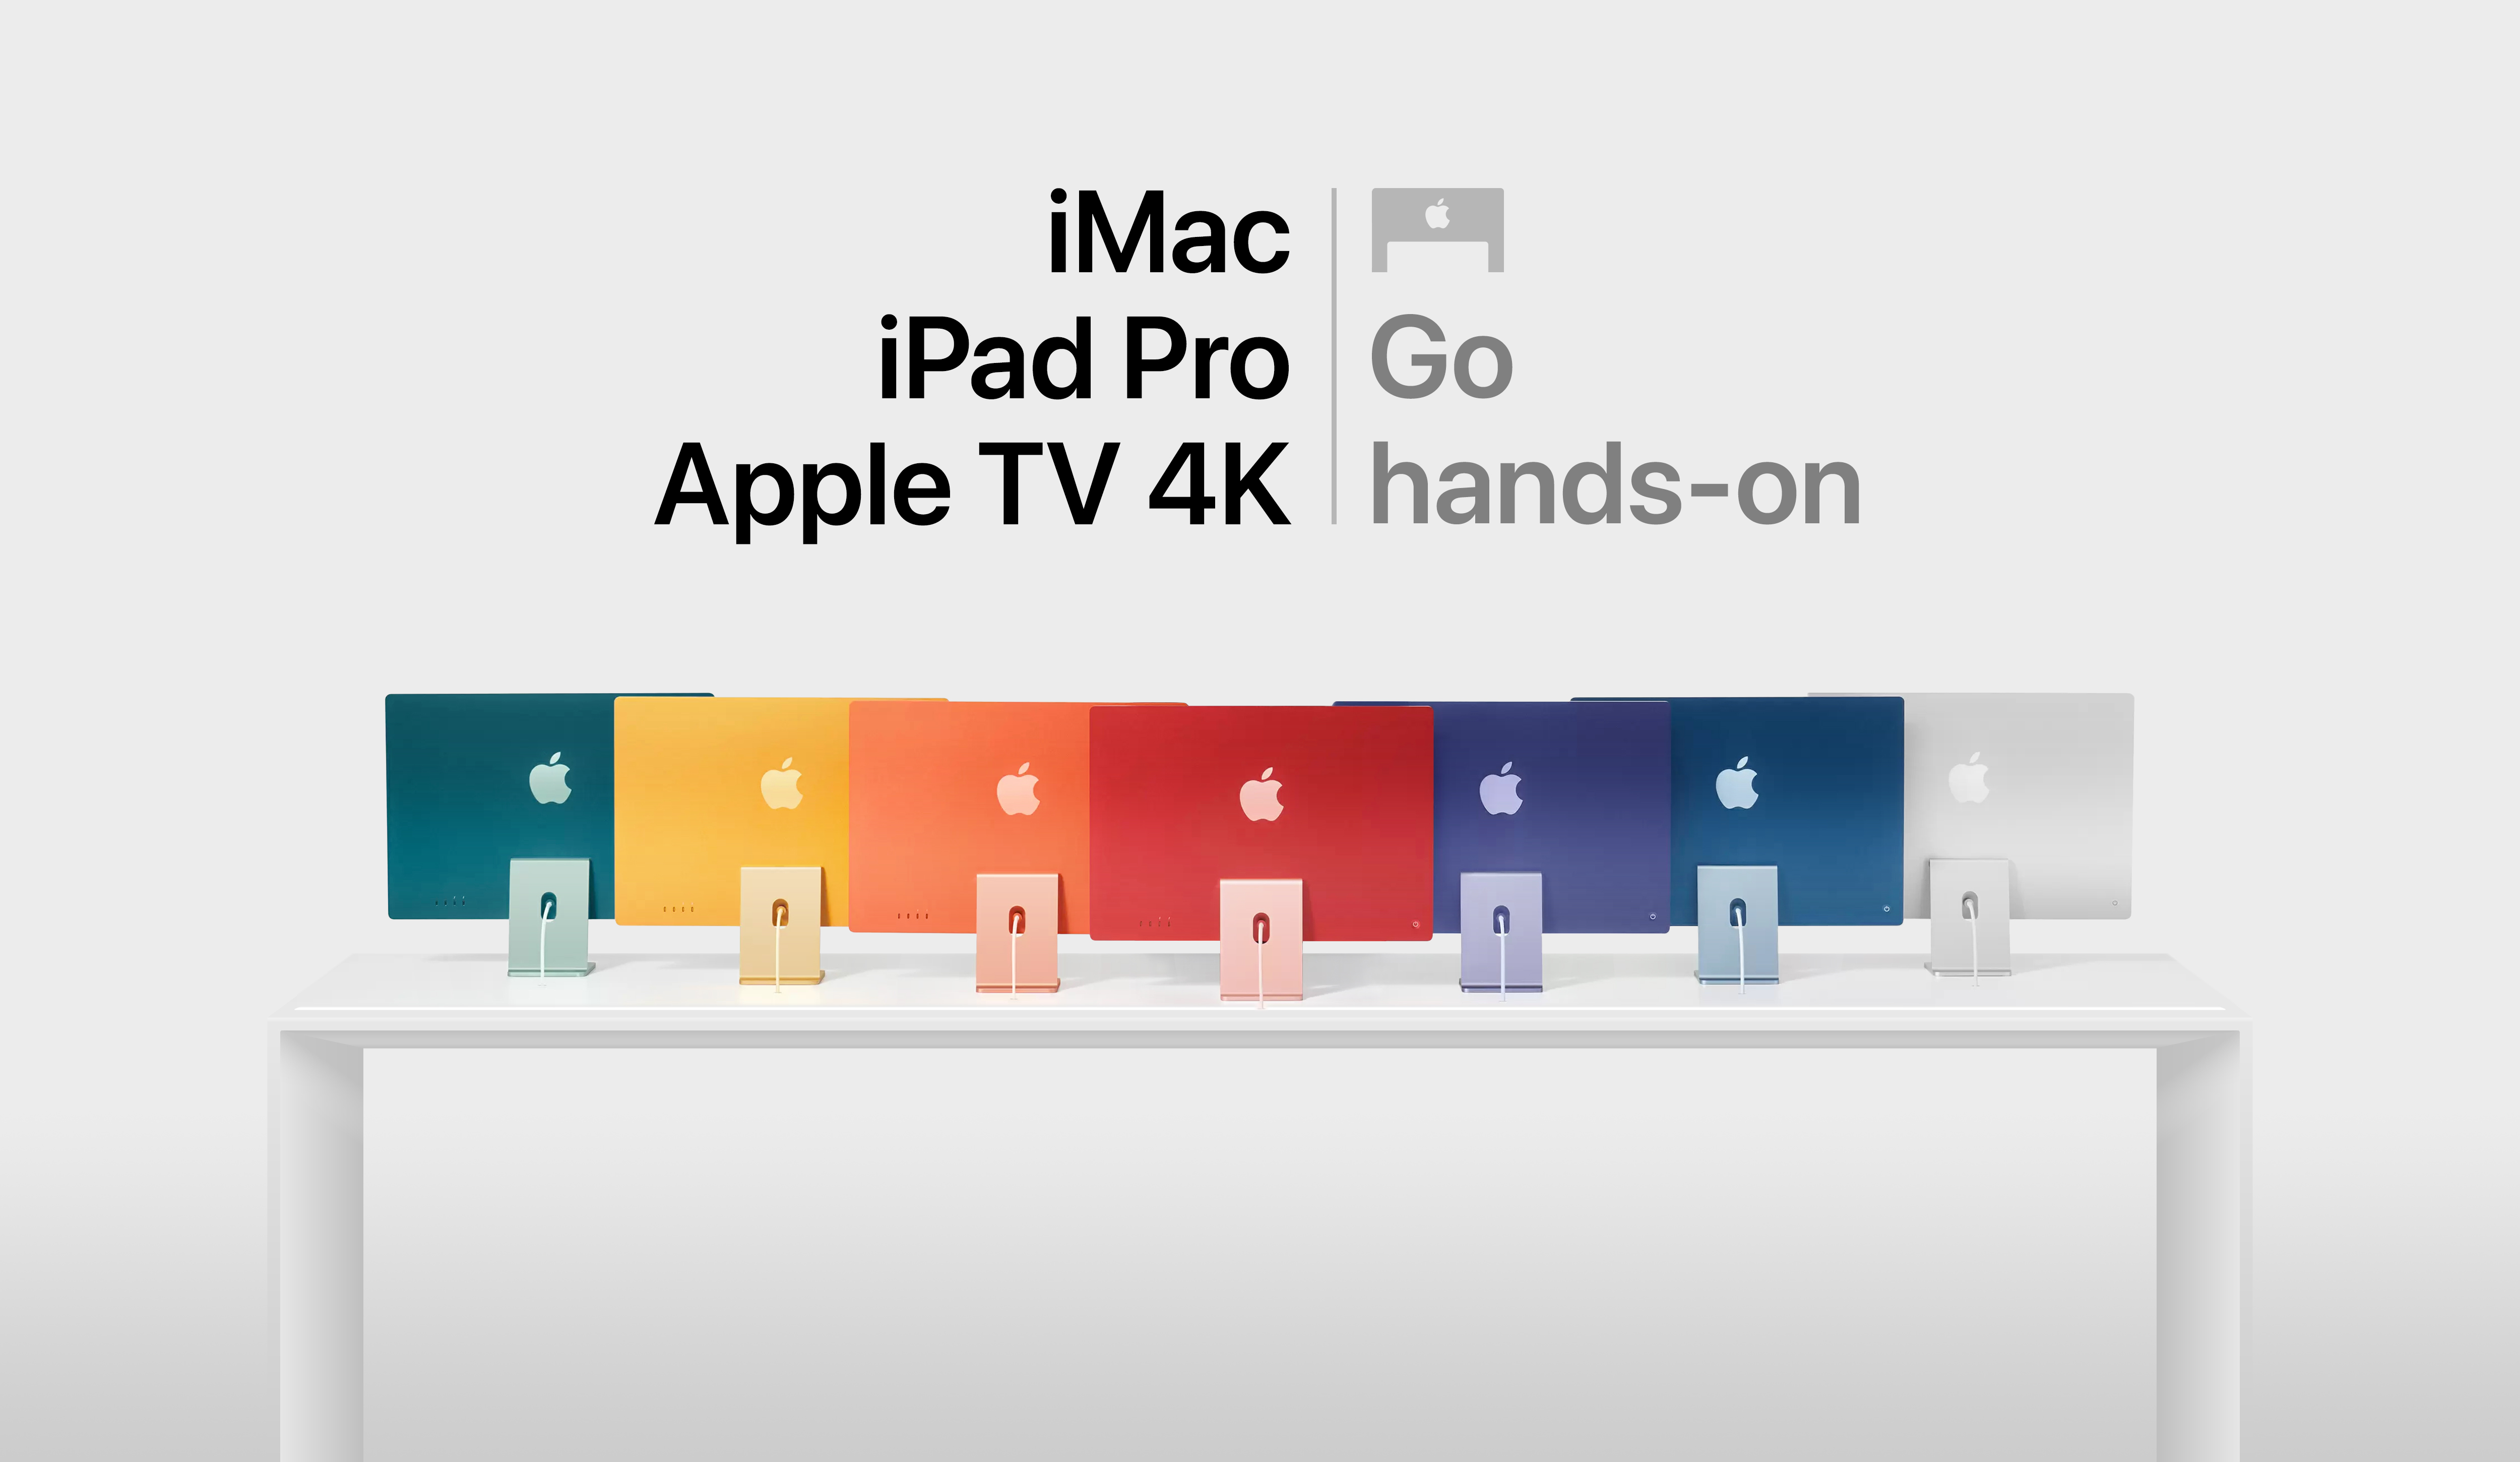 Go hands-on with iMac, iPad Pro, and Apple TV 4K.